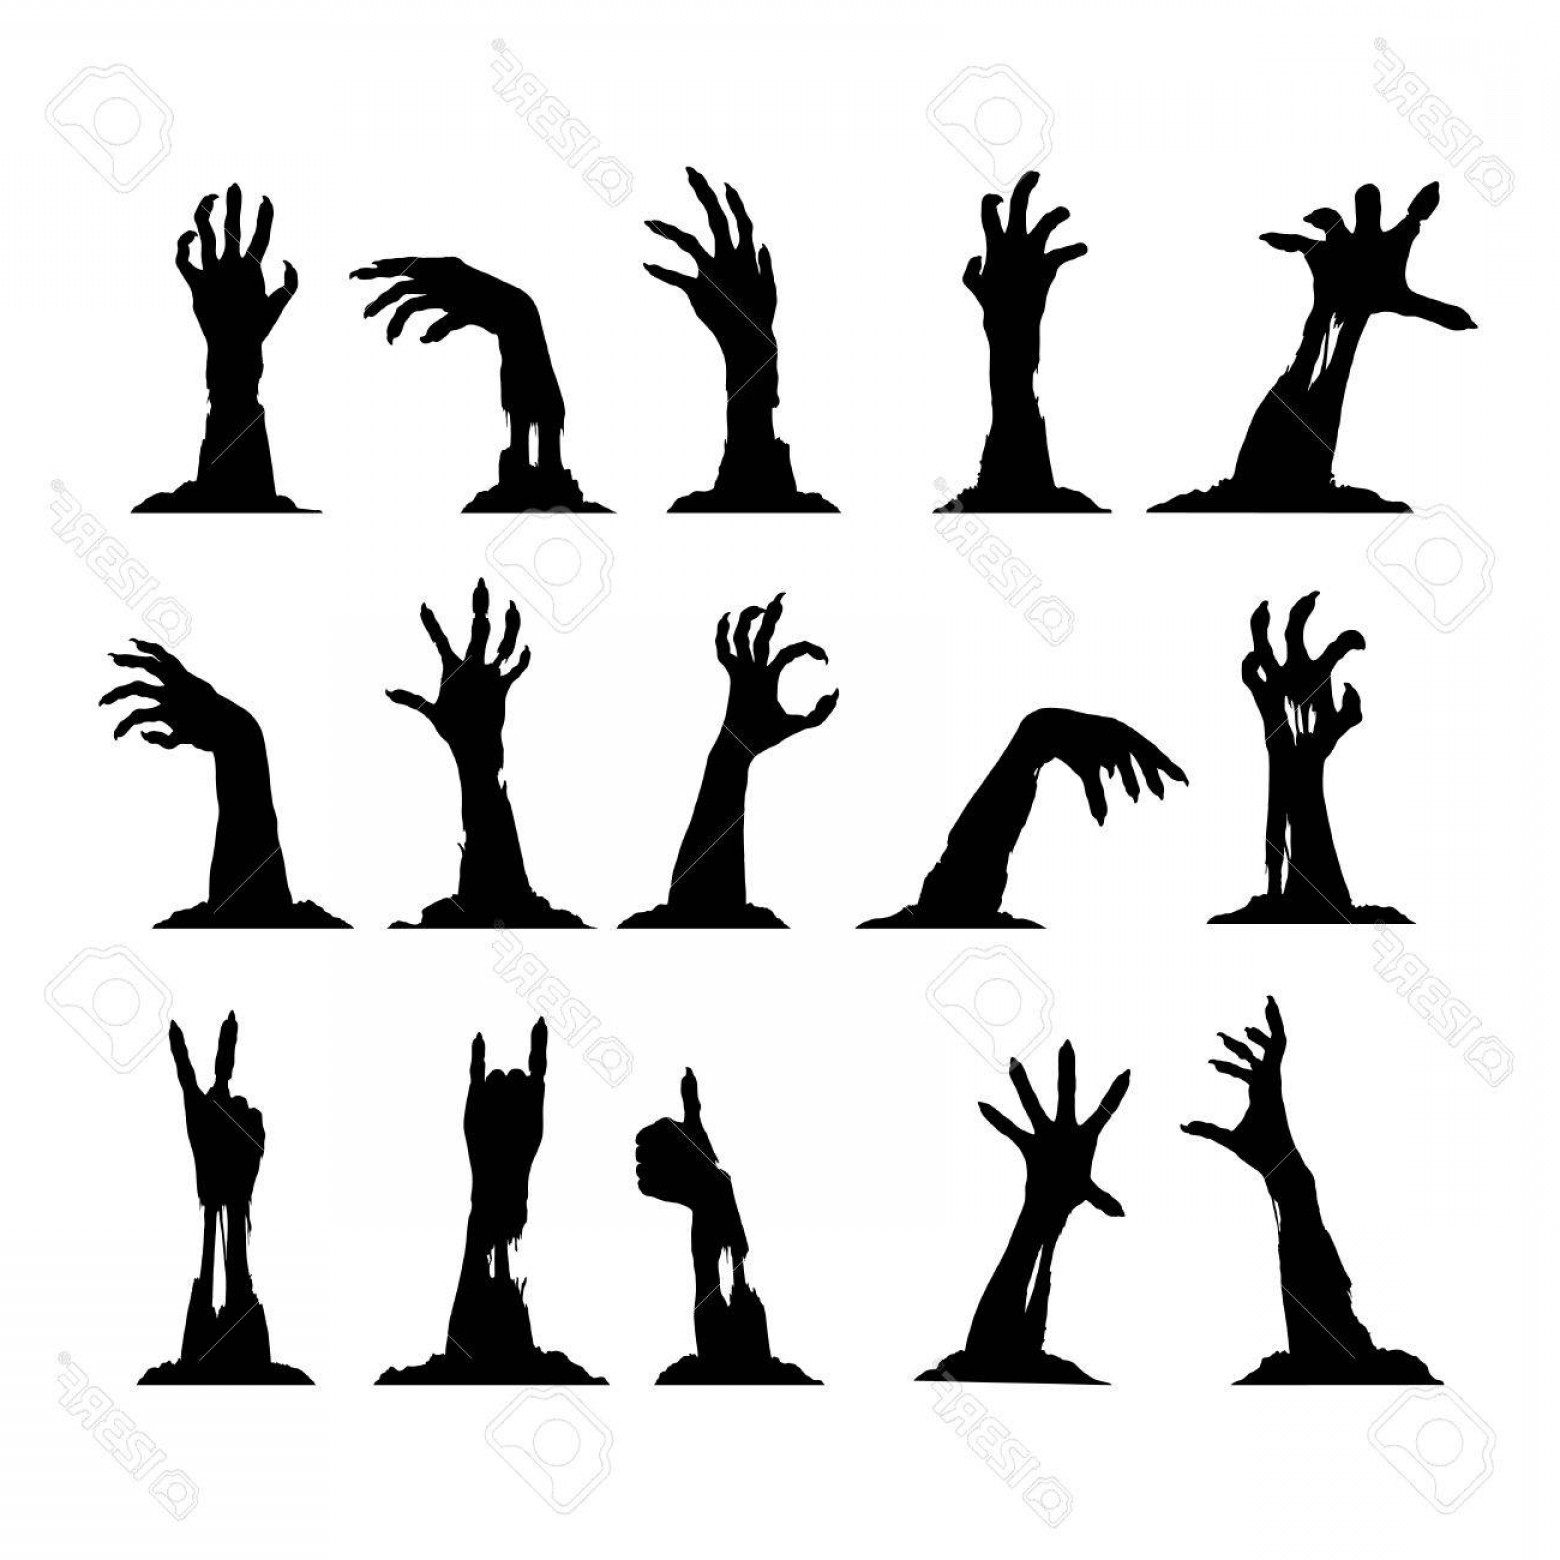 1560x1560 Photostock Vector Set Of Silhouettes Of Zombie Hands Collection